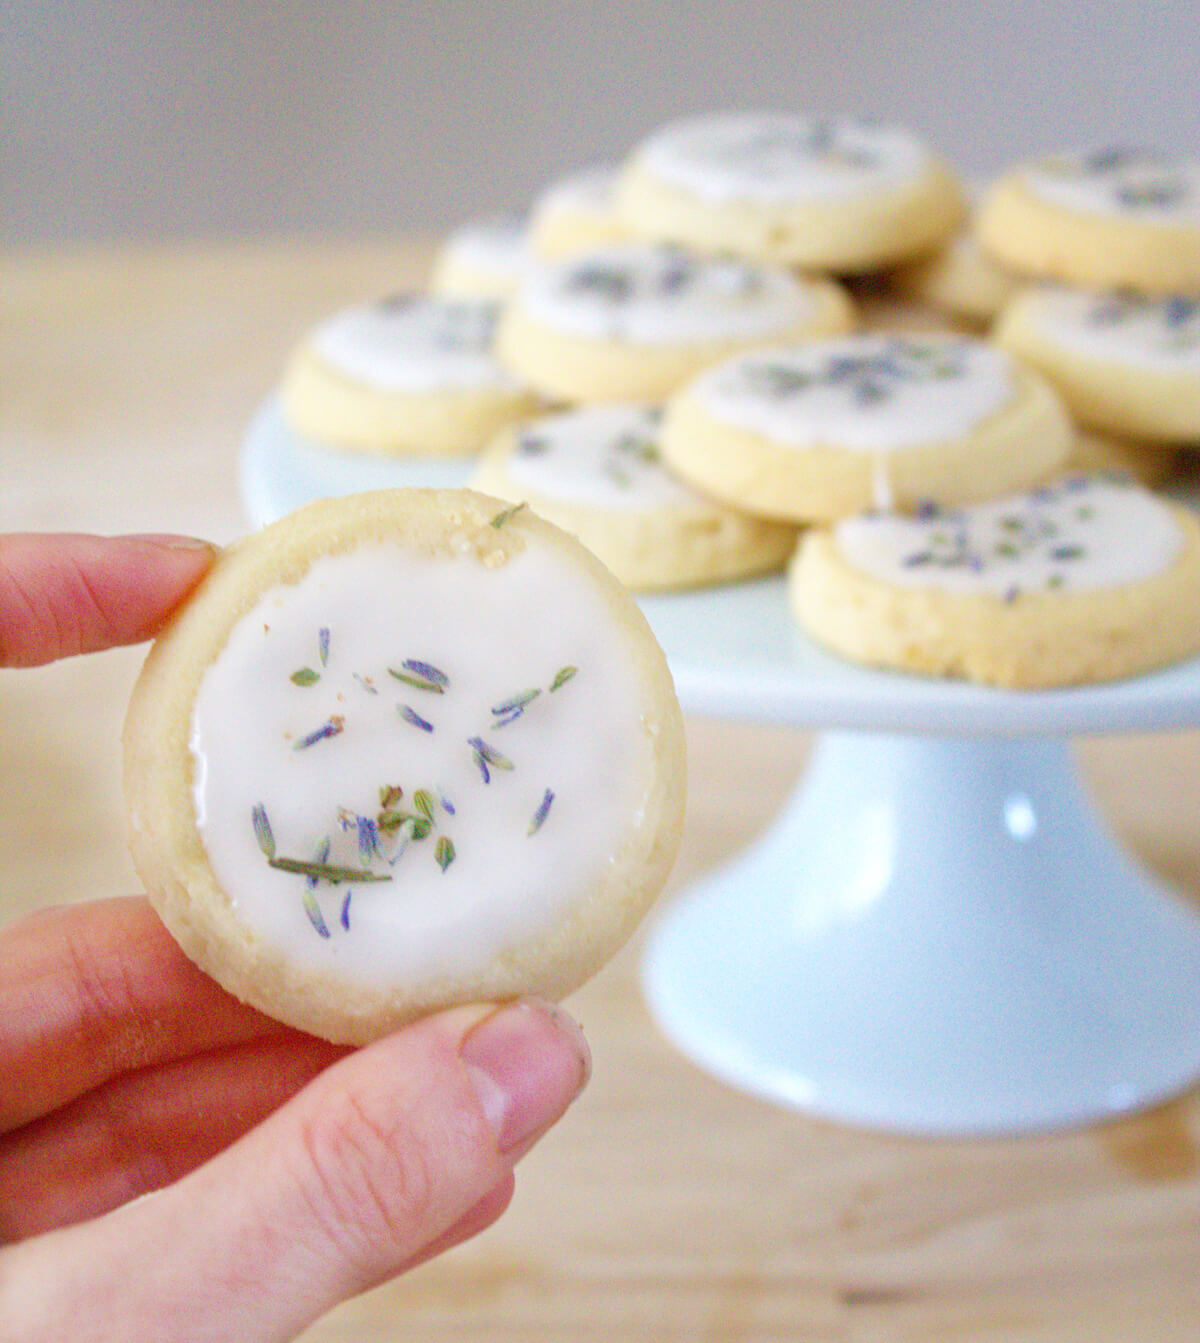 Closeup of a hand holding a tea cookie with icing and lavender buds. A plate of cookies stands in the background.